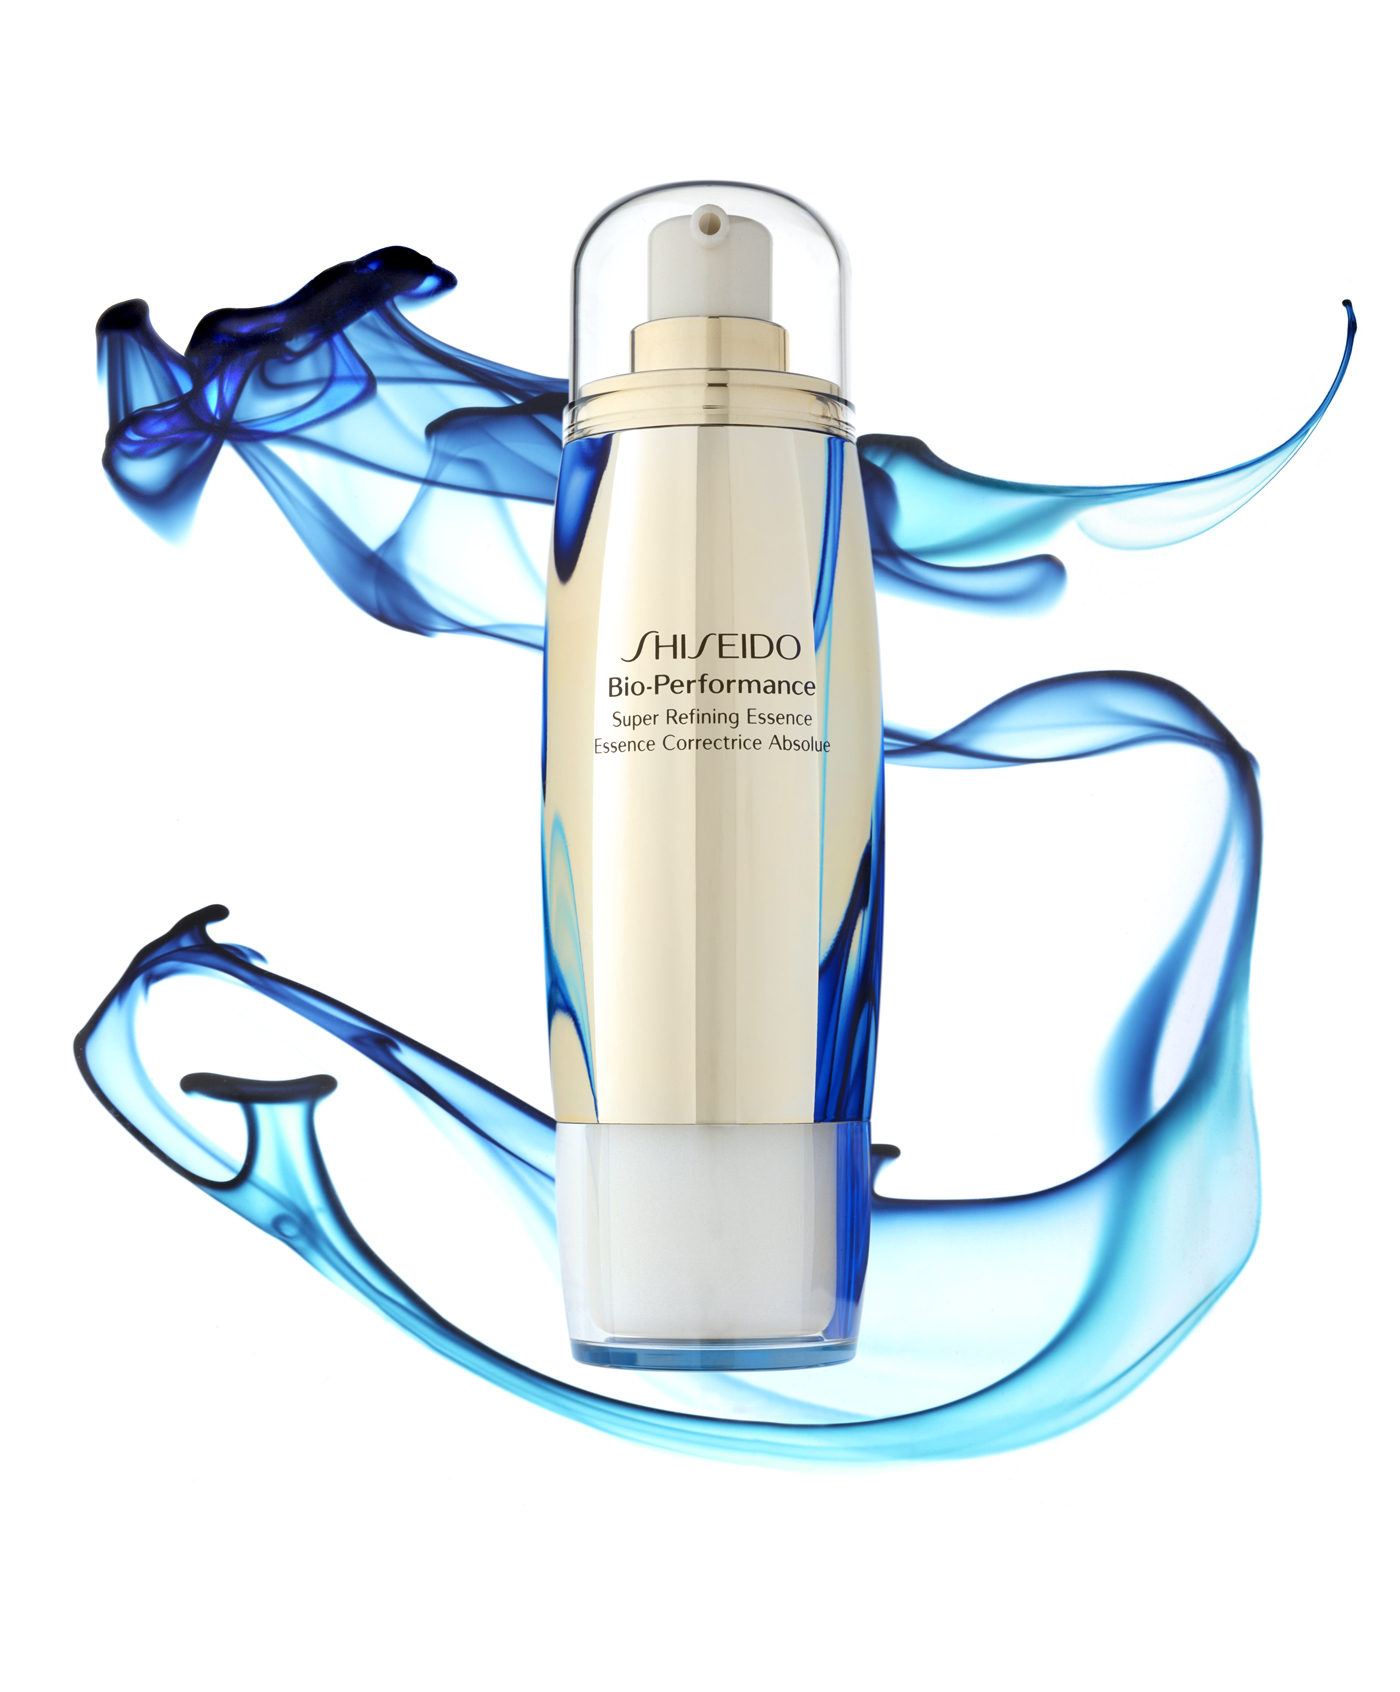 Shiseido Bio Performance A_ip3 copy